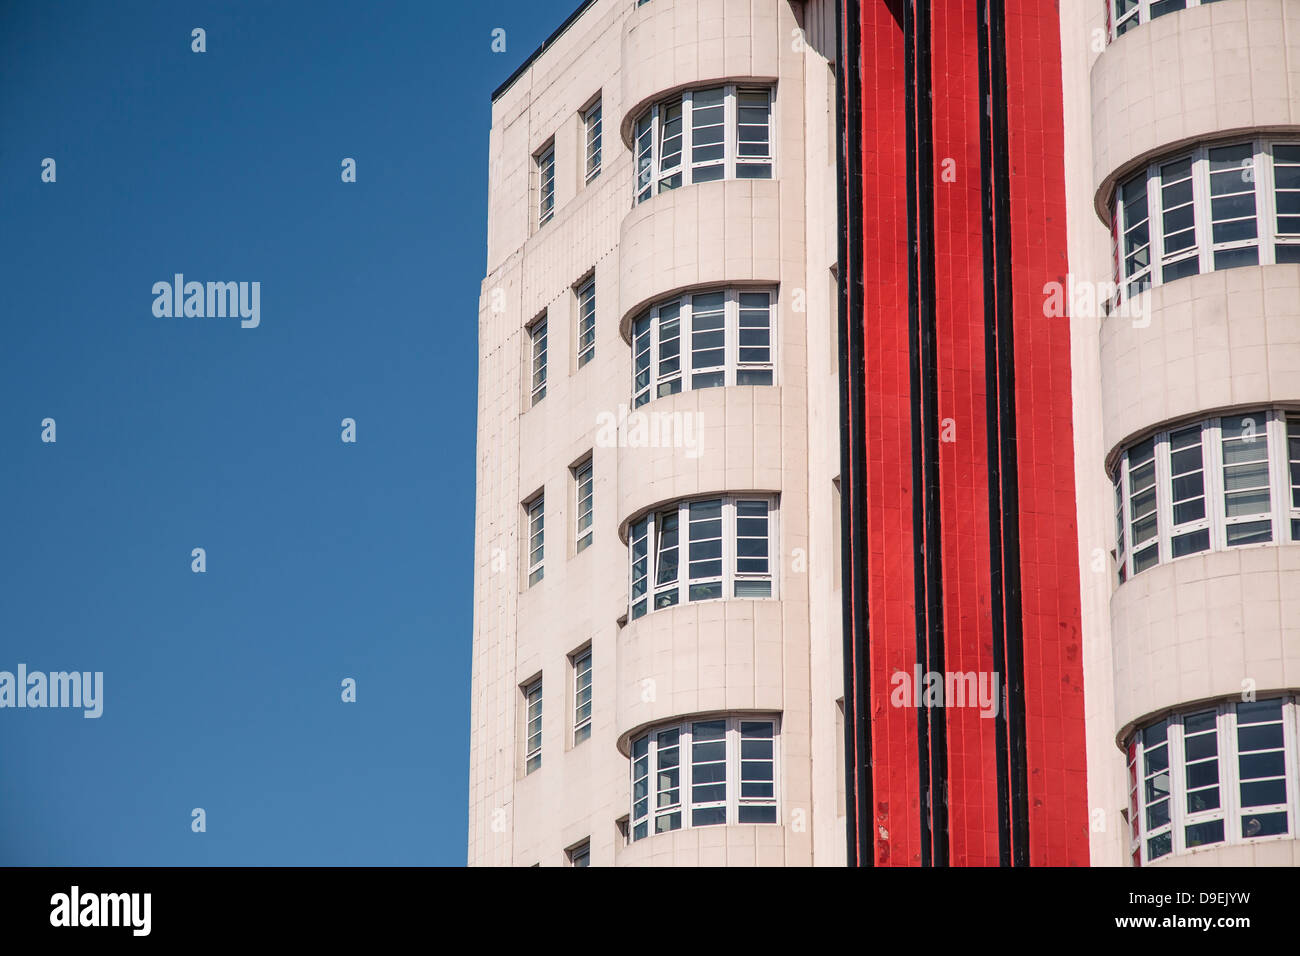 A close-up view of the art deco Beresford Building in Glasgow which is now an apartment building. - Stock Image